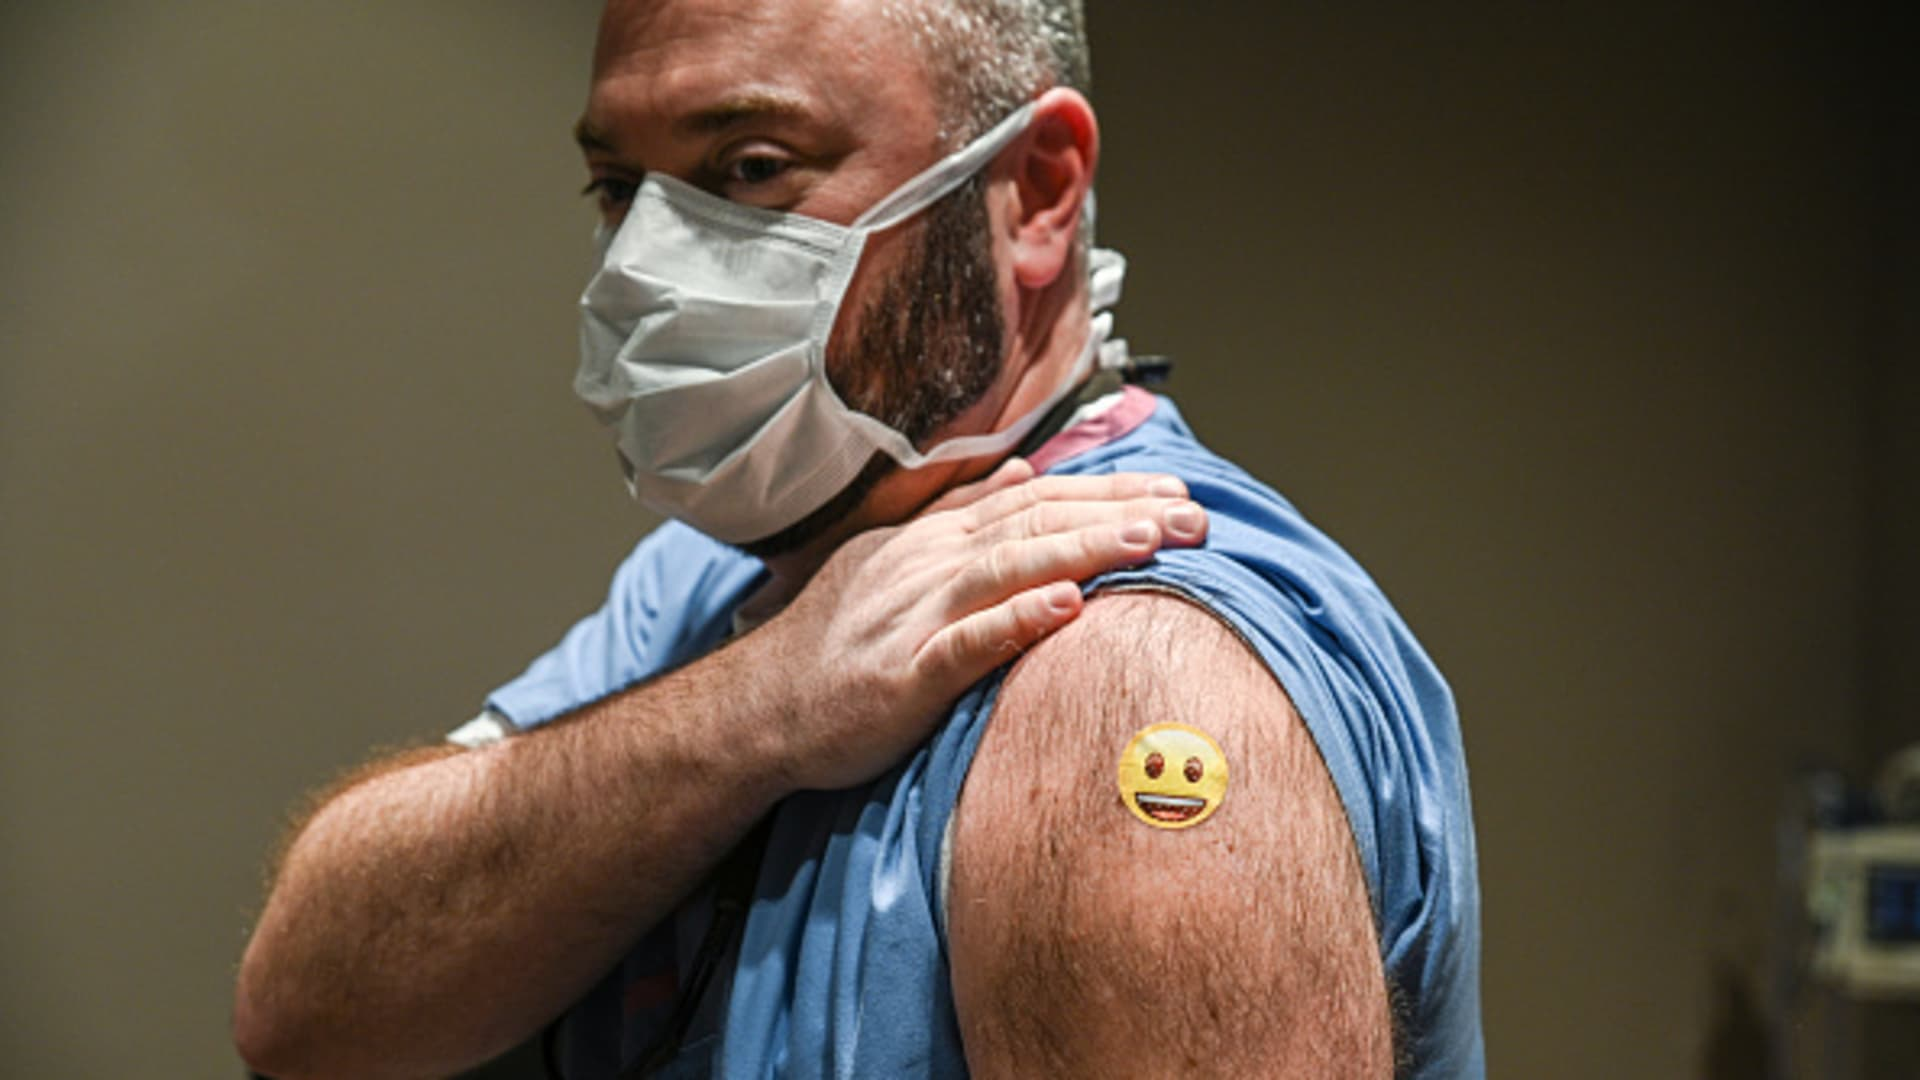 Dr. Jason Smith displays his bandage after being administered a COVID-19 vaccination at University of Louisville Hospital on December 14, 2020 in Louisville, Kentucky.